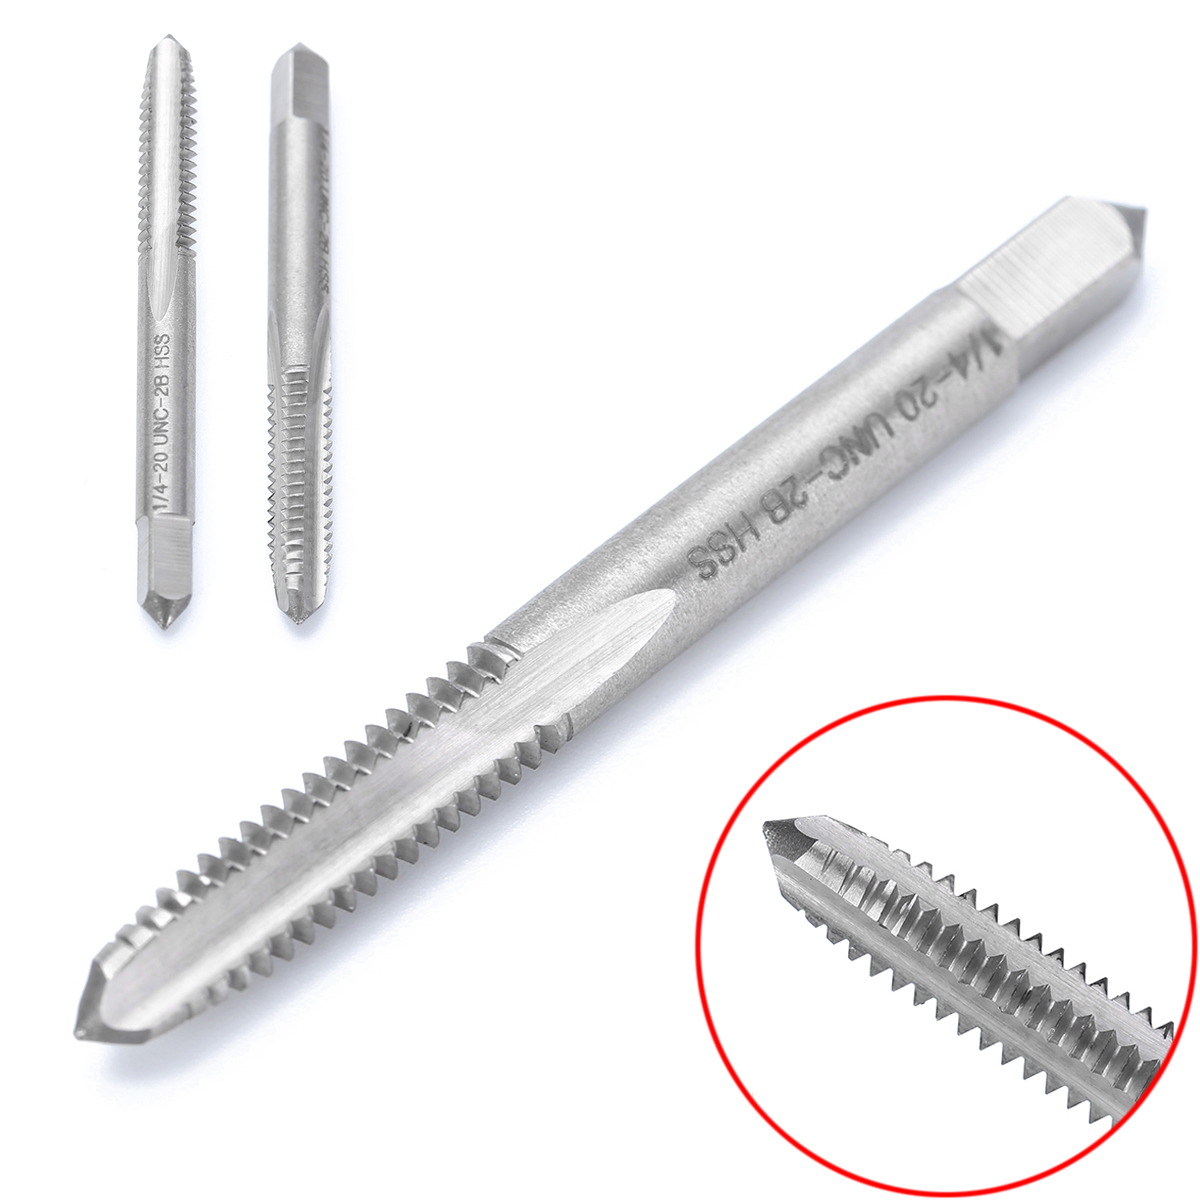 High Hardness Screw Thread 1/4-20 UNC-2B HSS Right Hand Thread Drill Screw Tap Spiral Point Straight Flute Tapping Tool